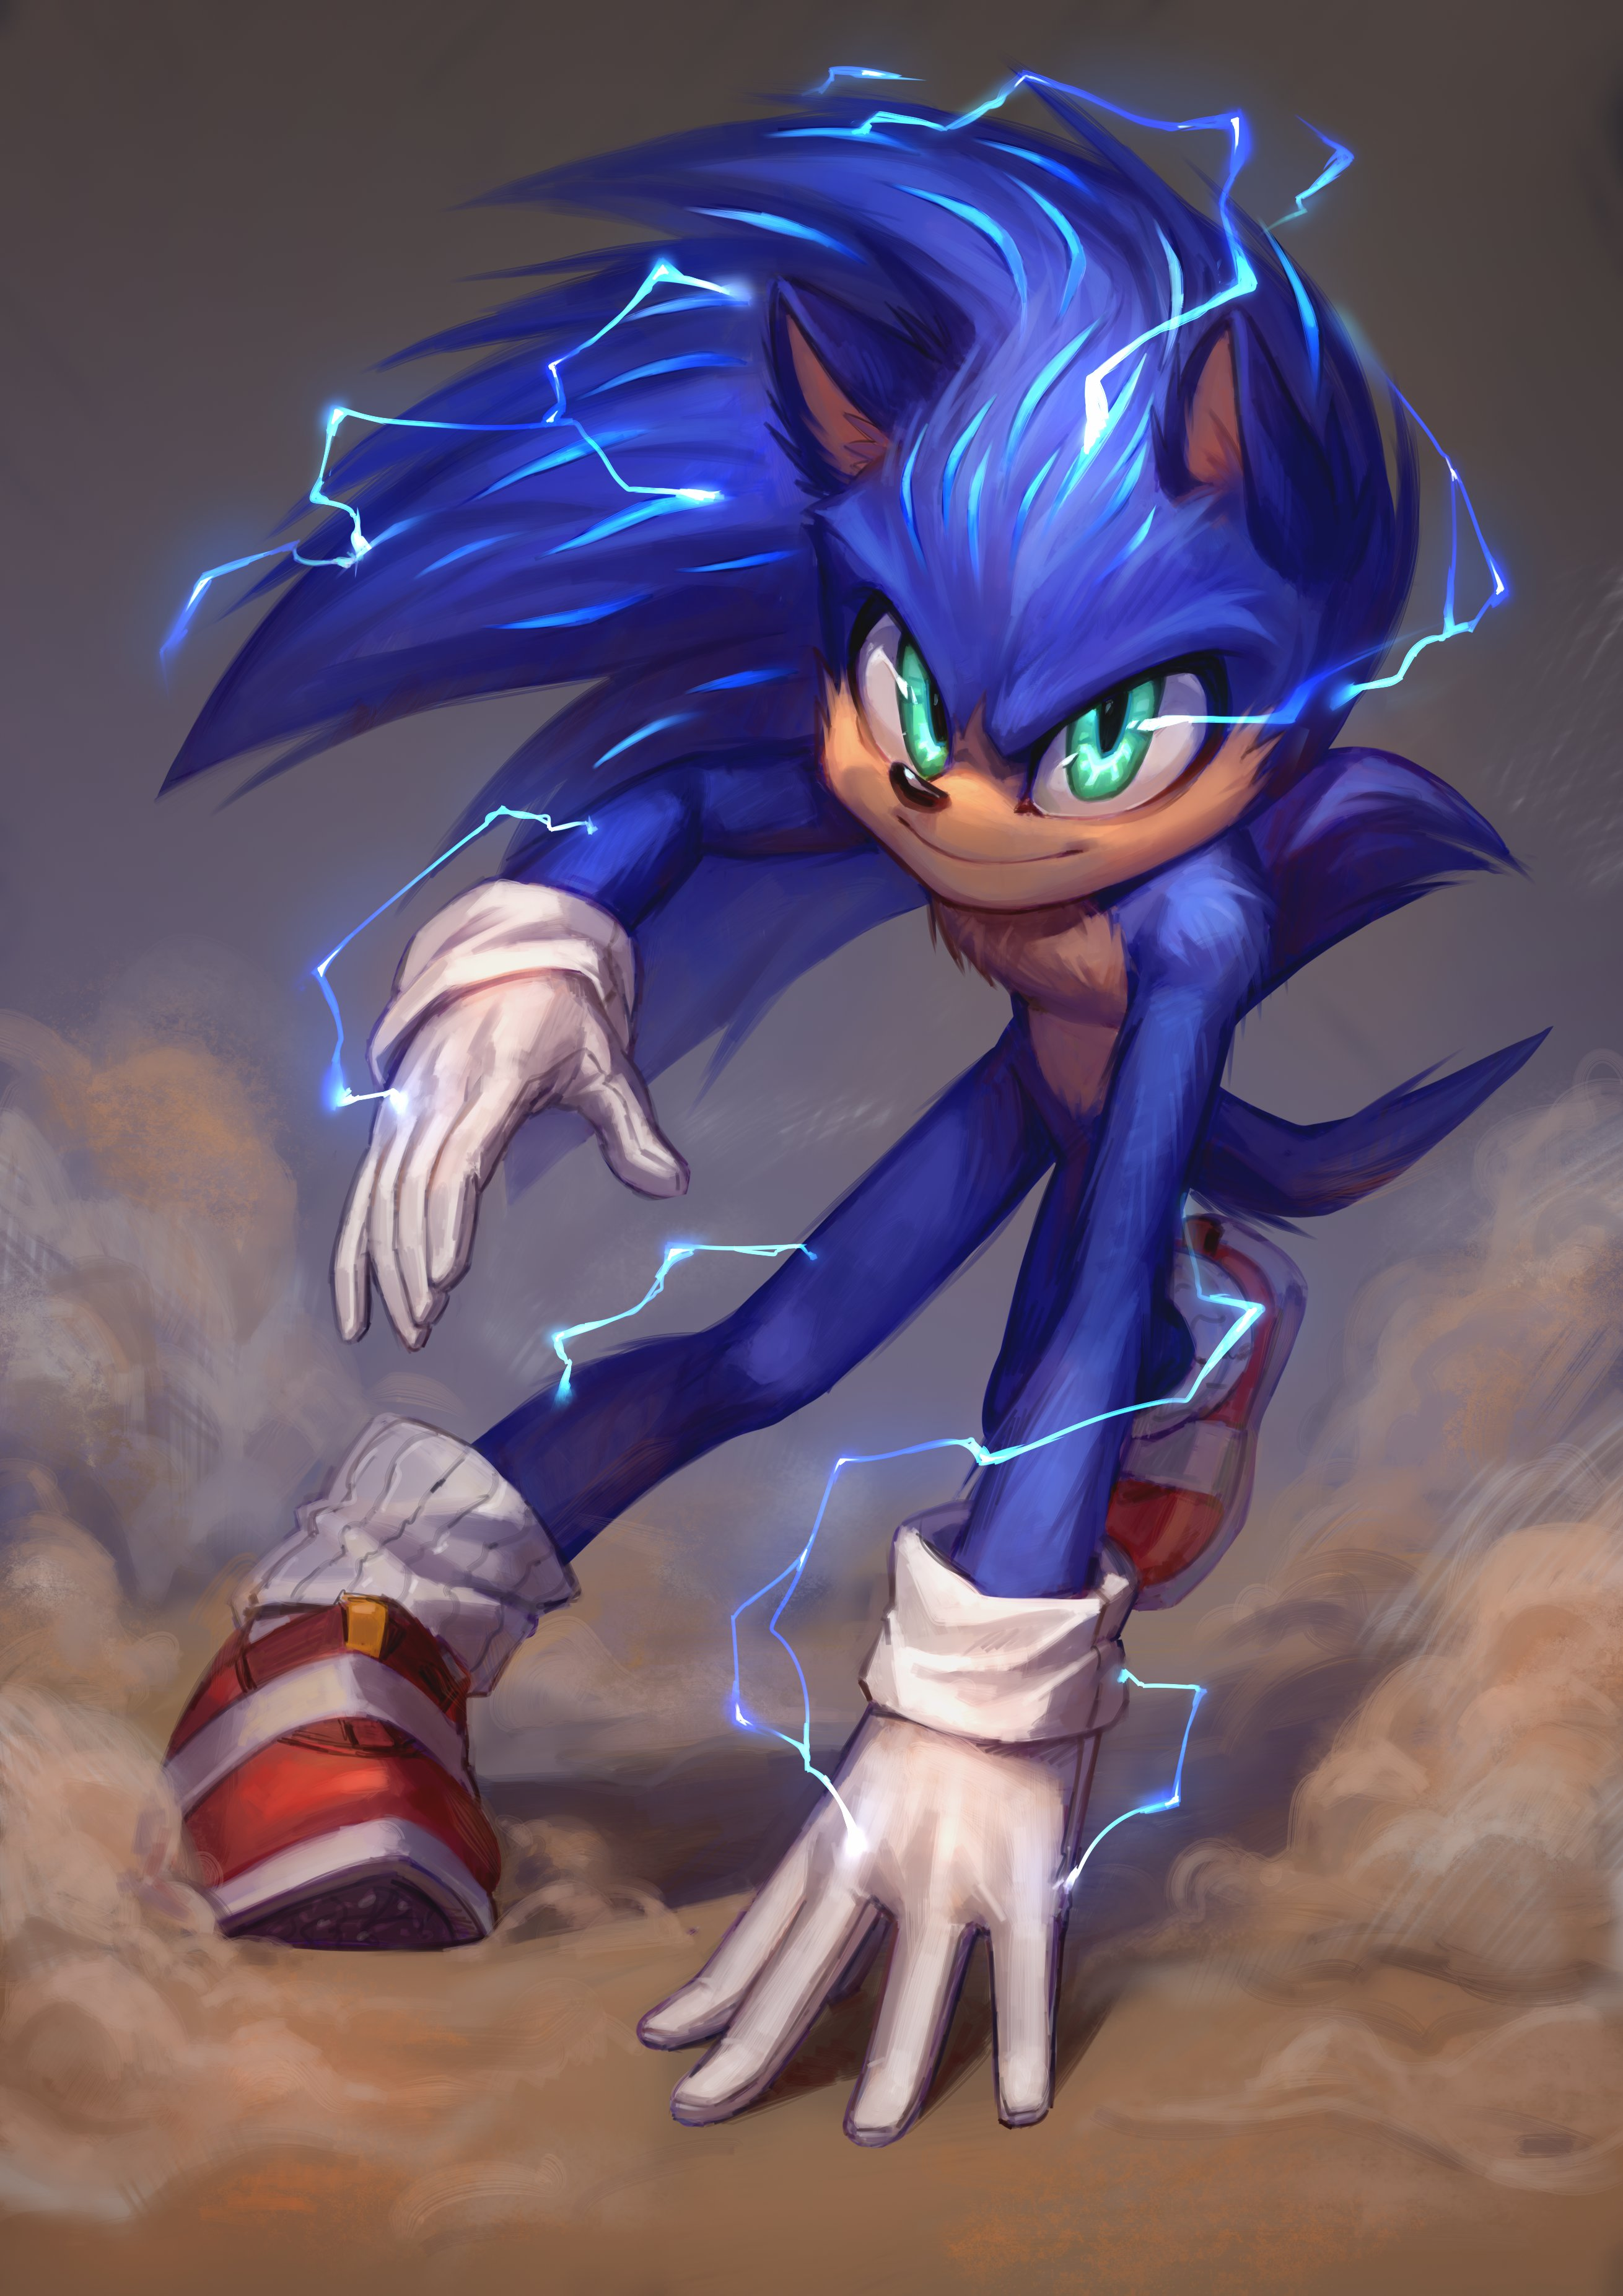 Kinda Reminds Me Of A More Modern Version Of Movie Sonic Sonic The Hedgehog 2020 Film Know Your Meme